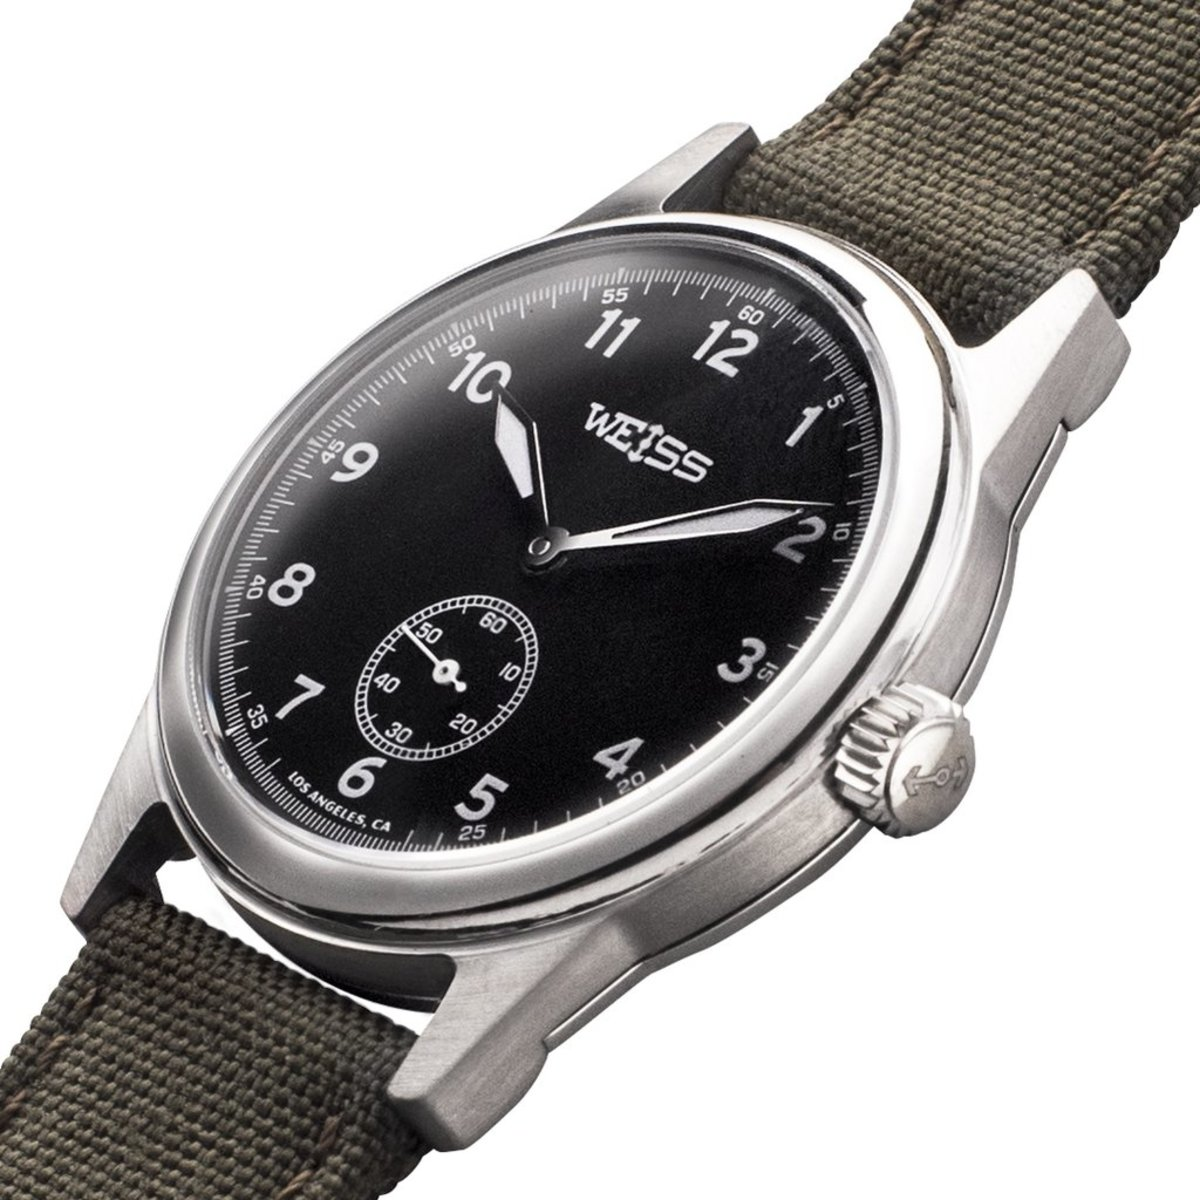 38mm_Standard_Issue_Field_Watch_Front_Angle_Black_1080_1024x1024